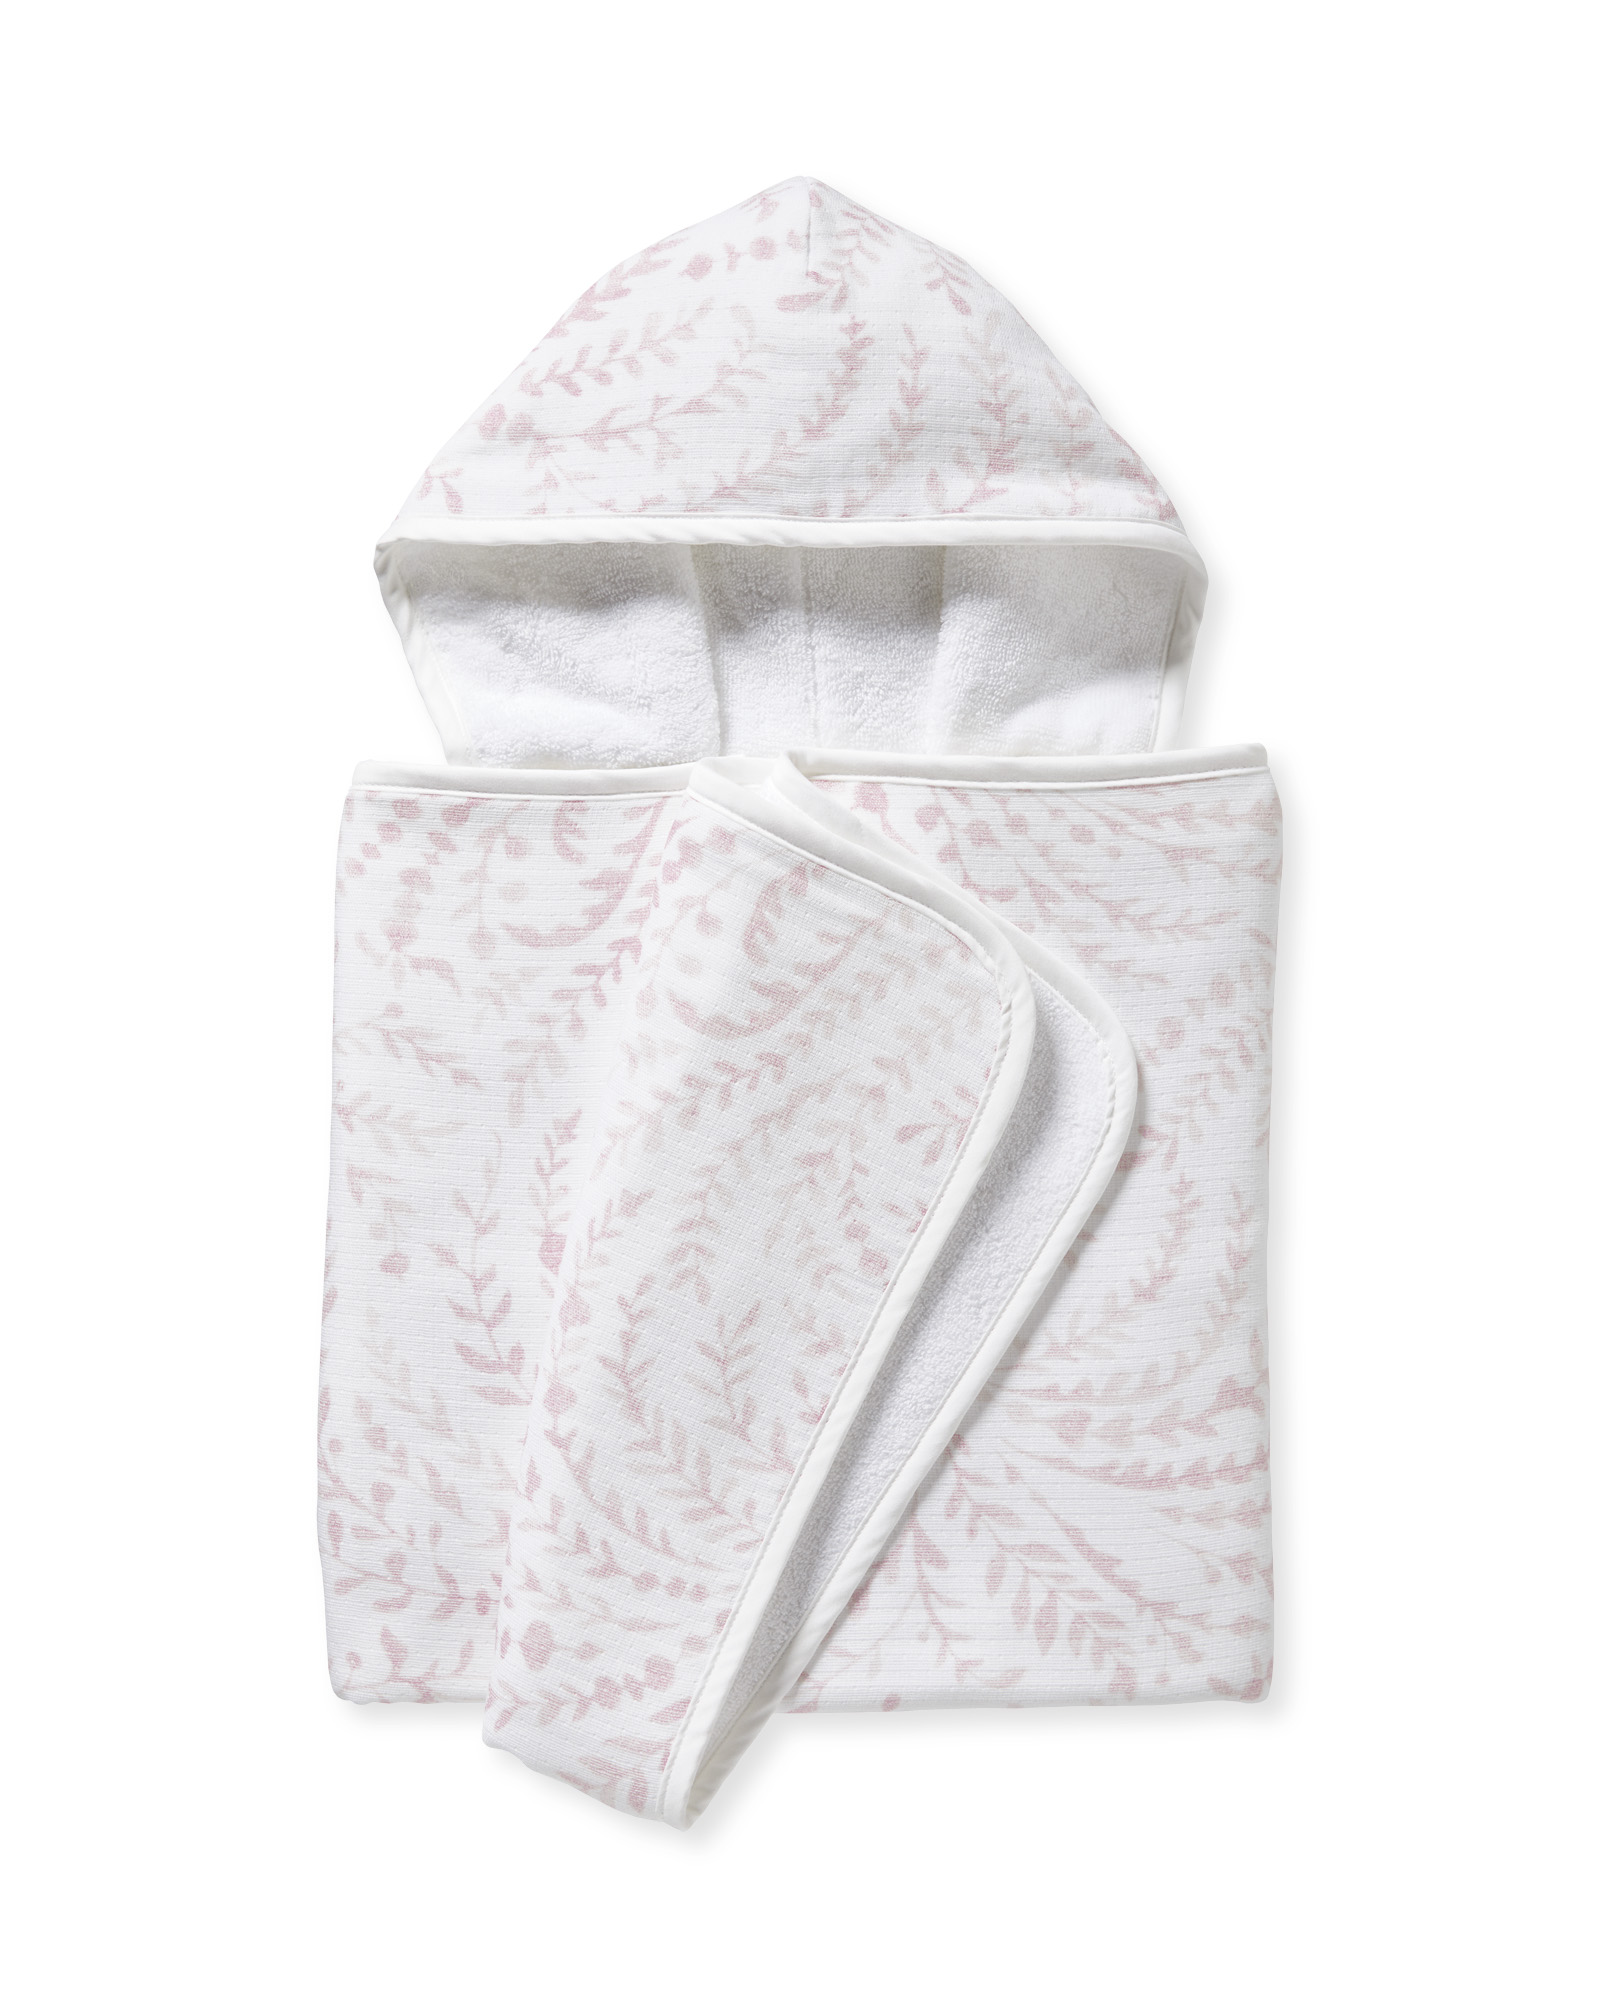 Priano Hooded Towel, Pink Sand